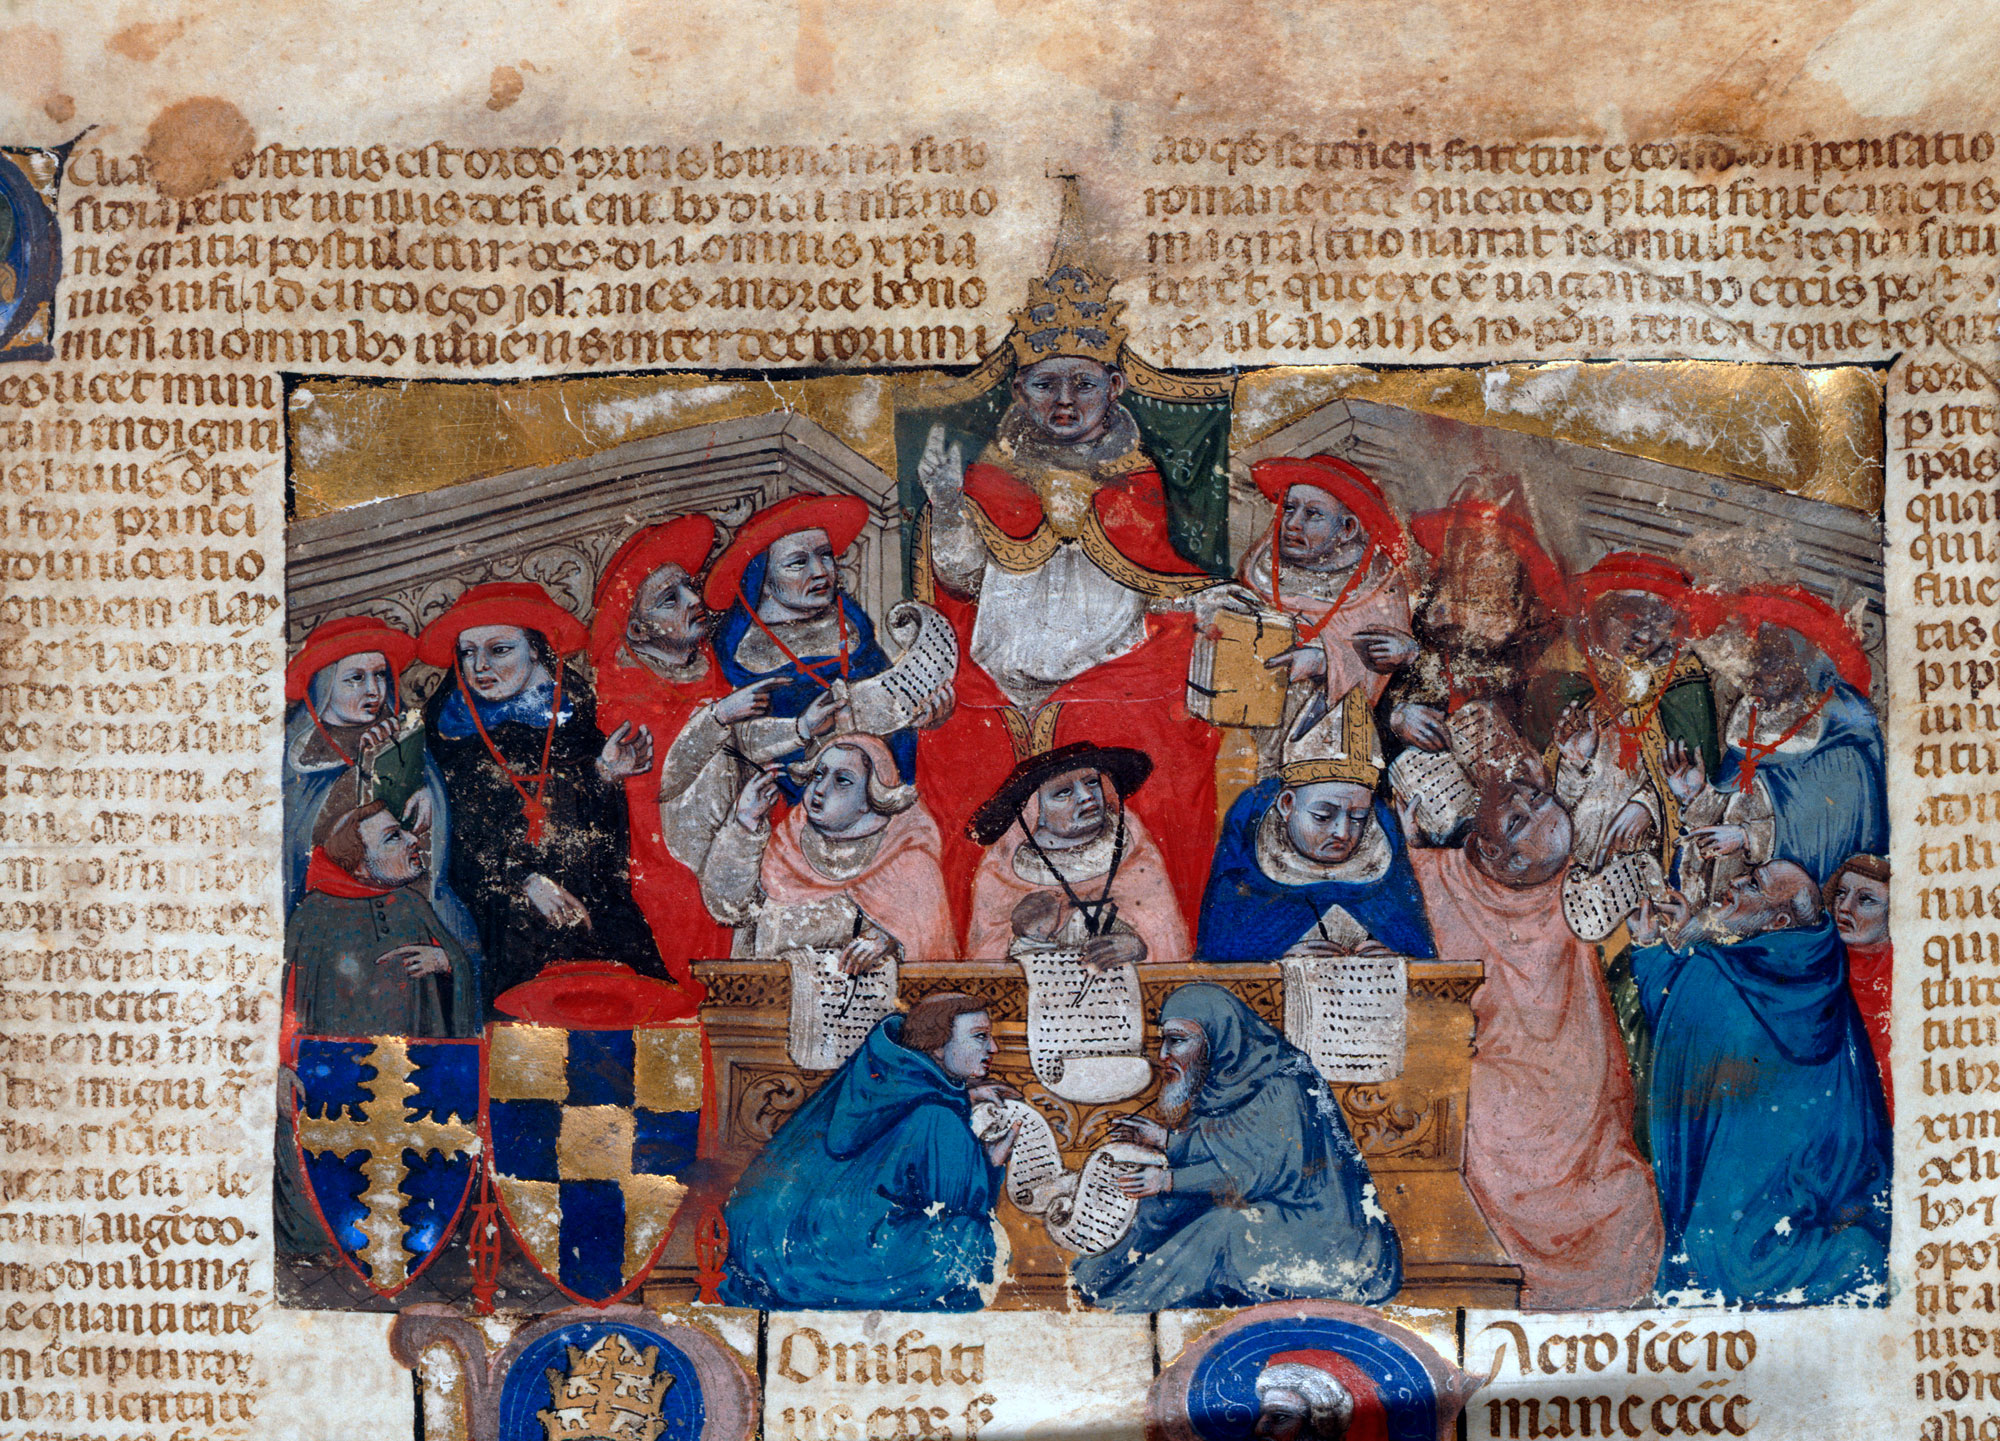 Church In The Middle Ages From Dedication To Dissent